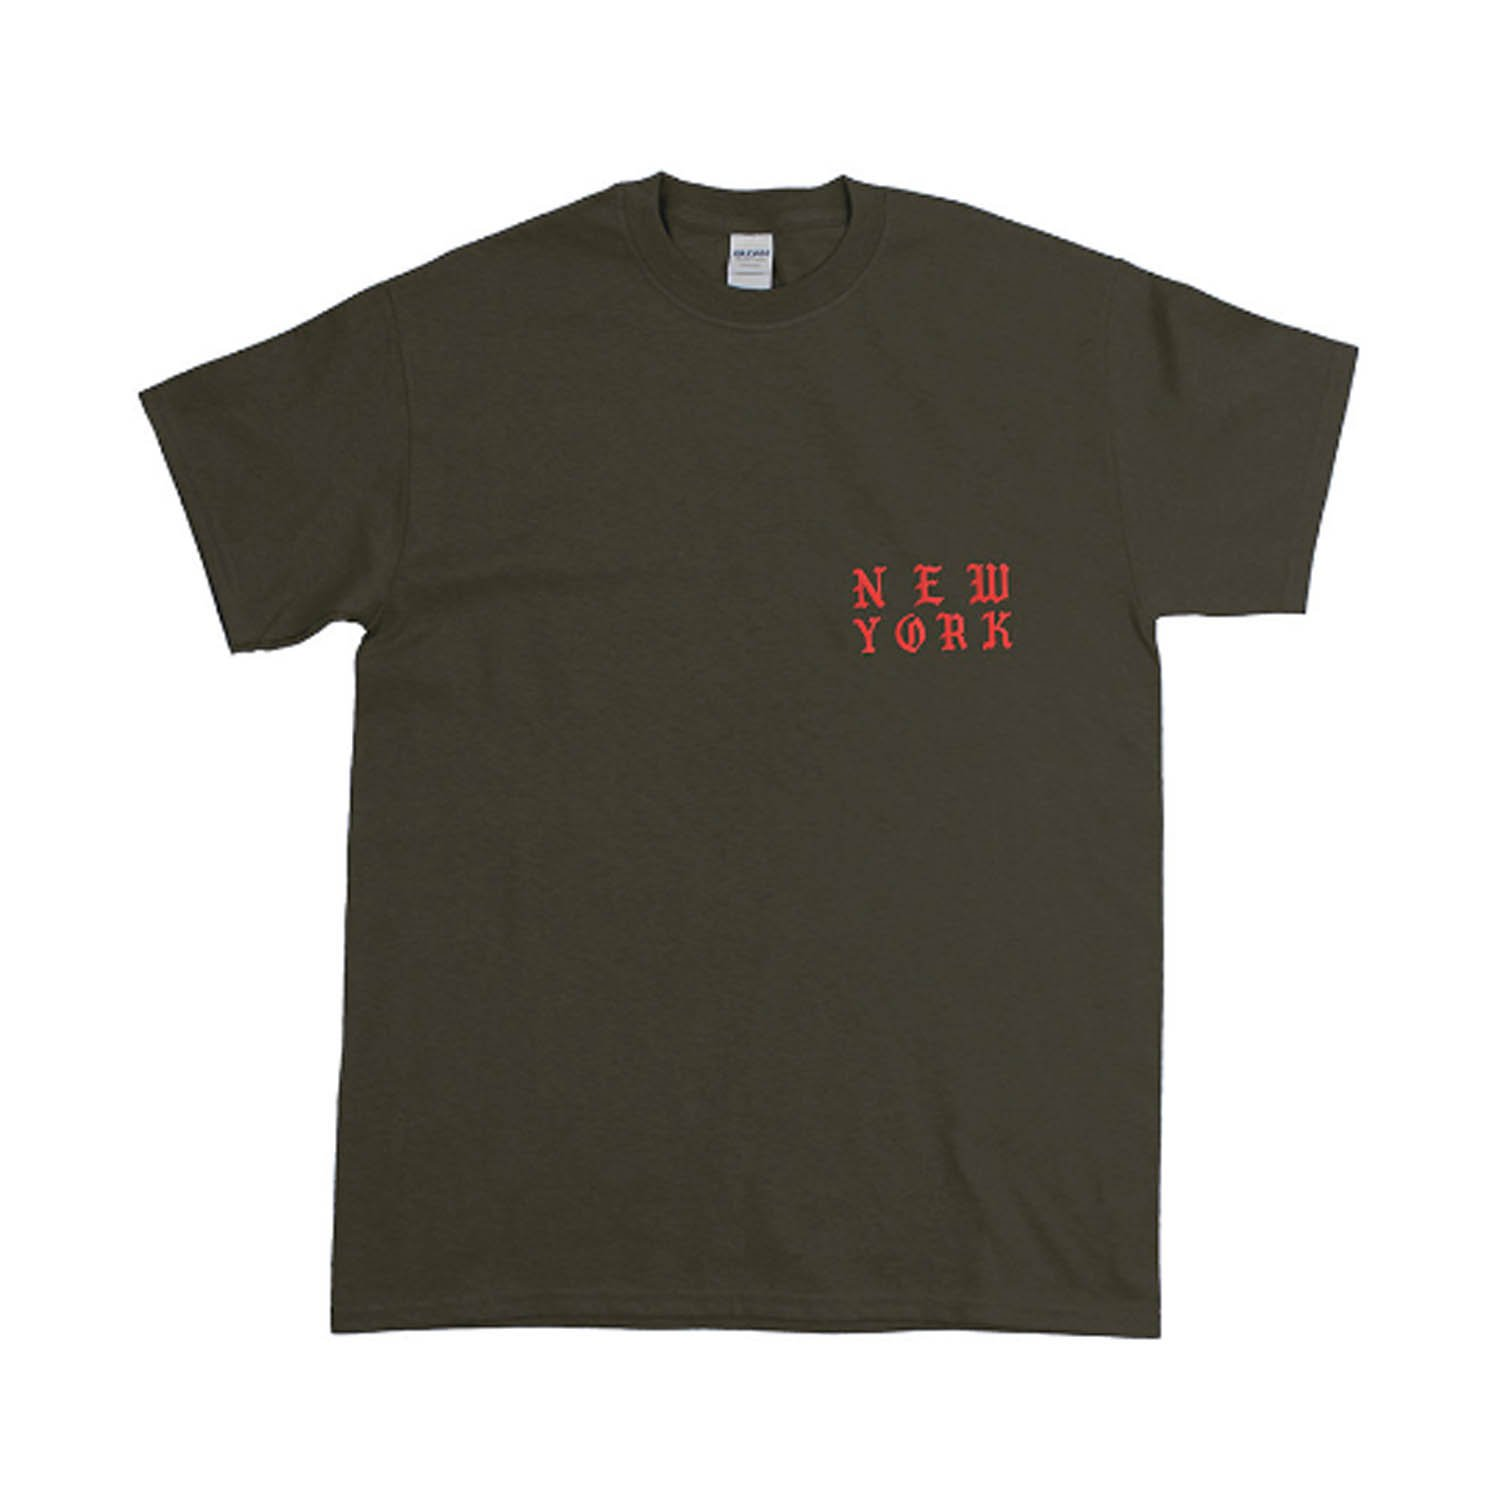 386d60d2f5fc2 Yeezus Tour You're The Sun in My Morning Babe Gov Ball Tee - Yeezy ...